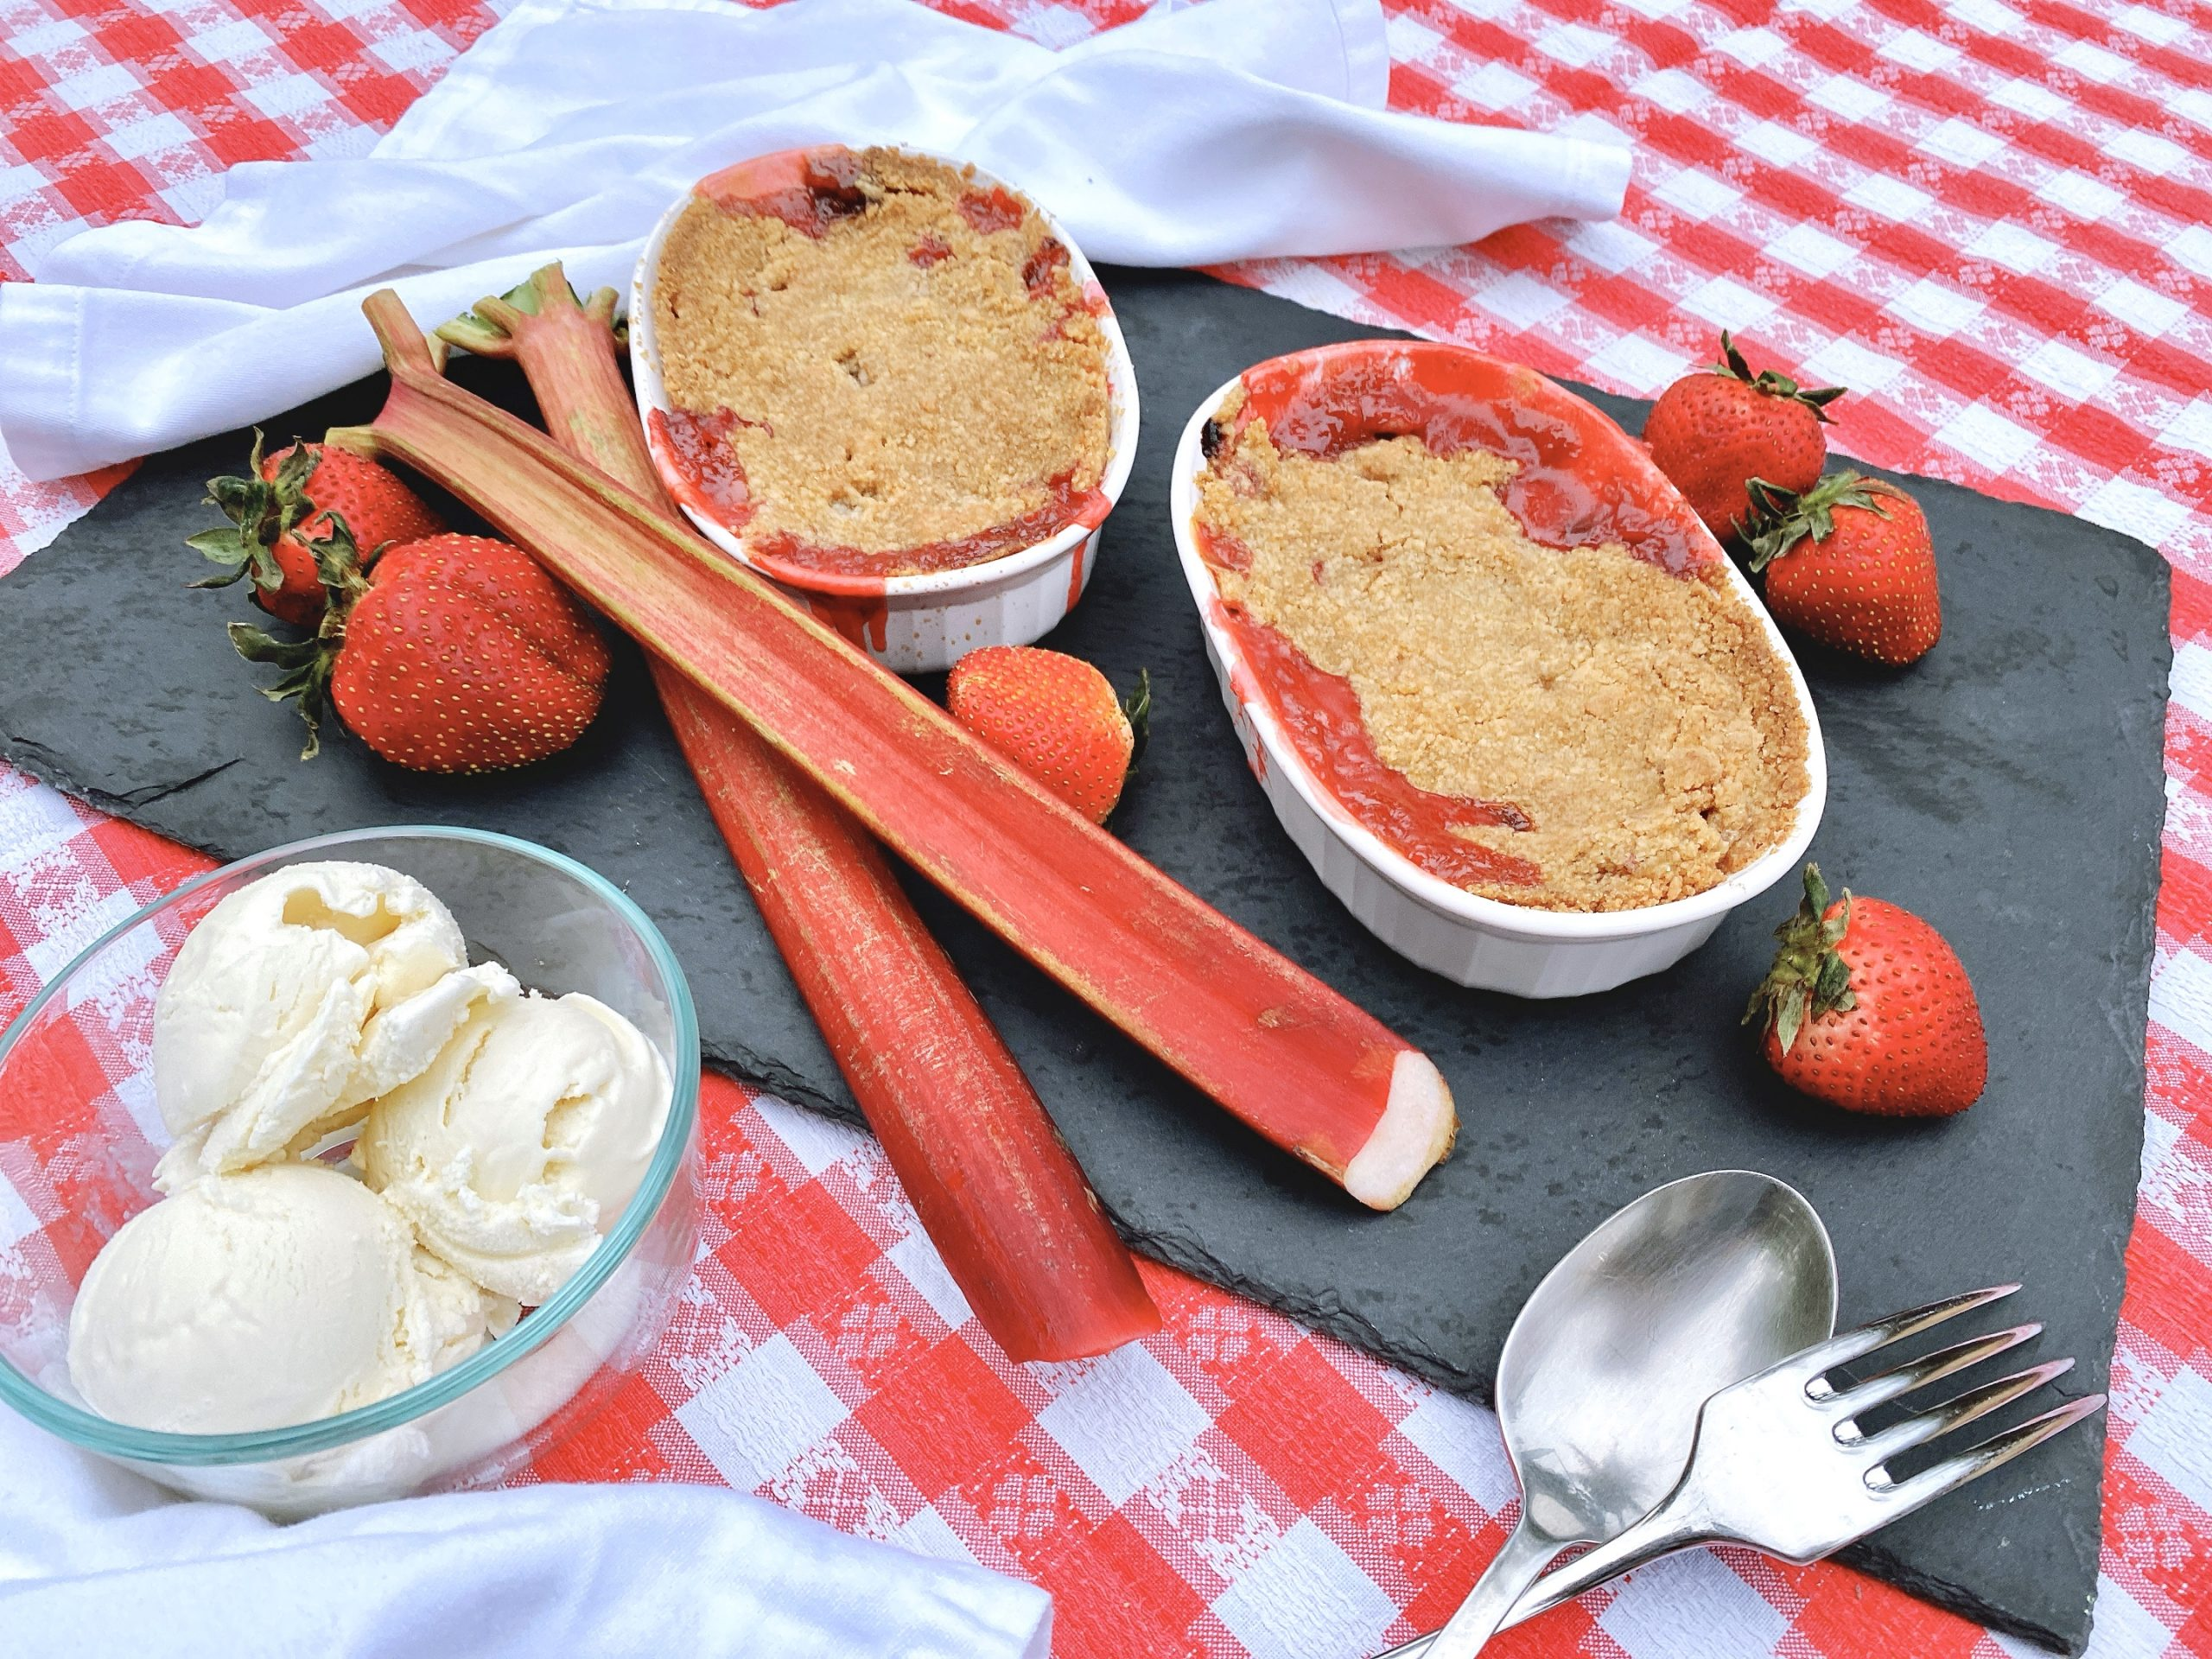 strawberry rhubarb crisp baked in oval ramekins and ready to serve